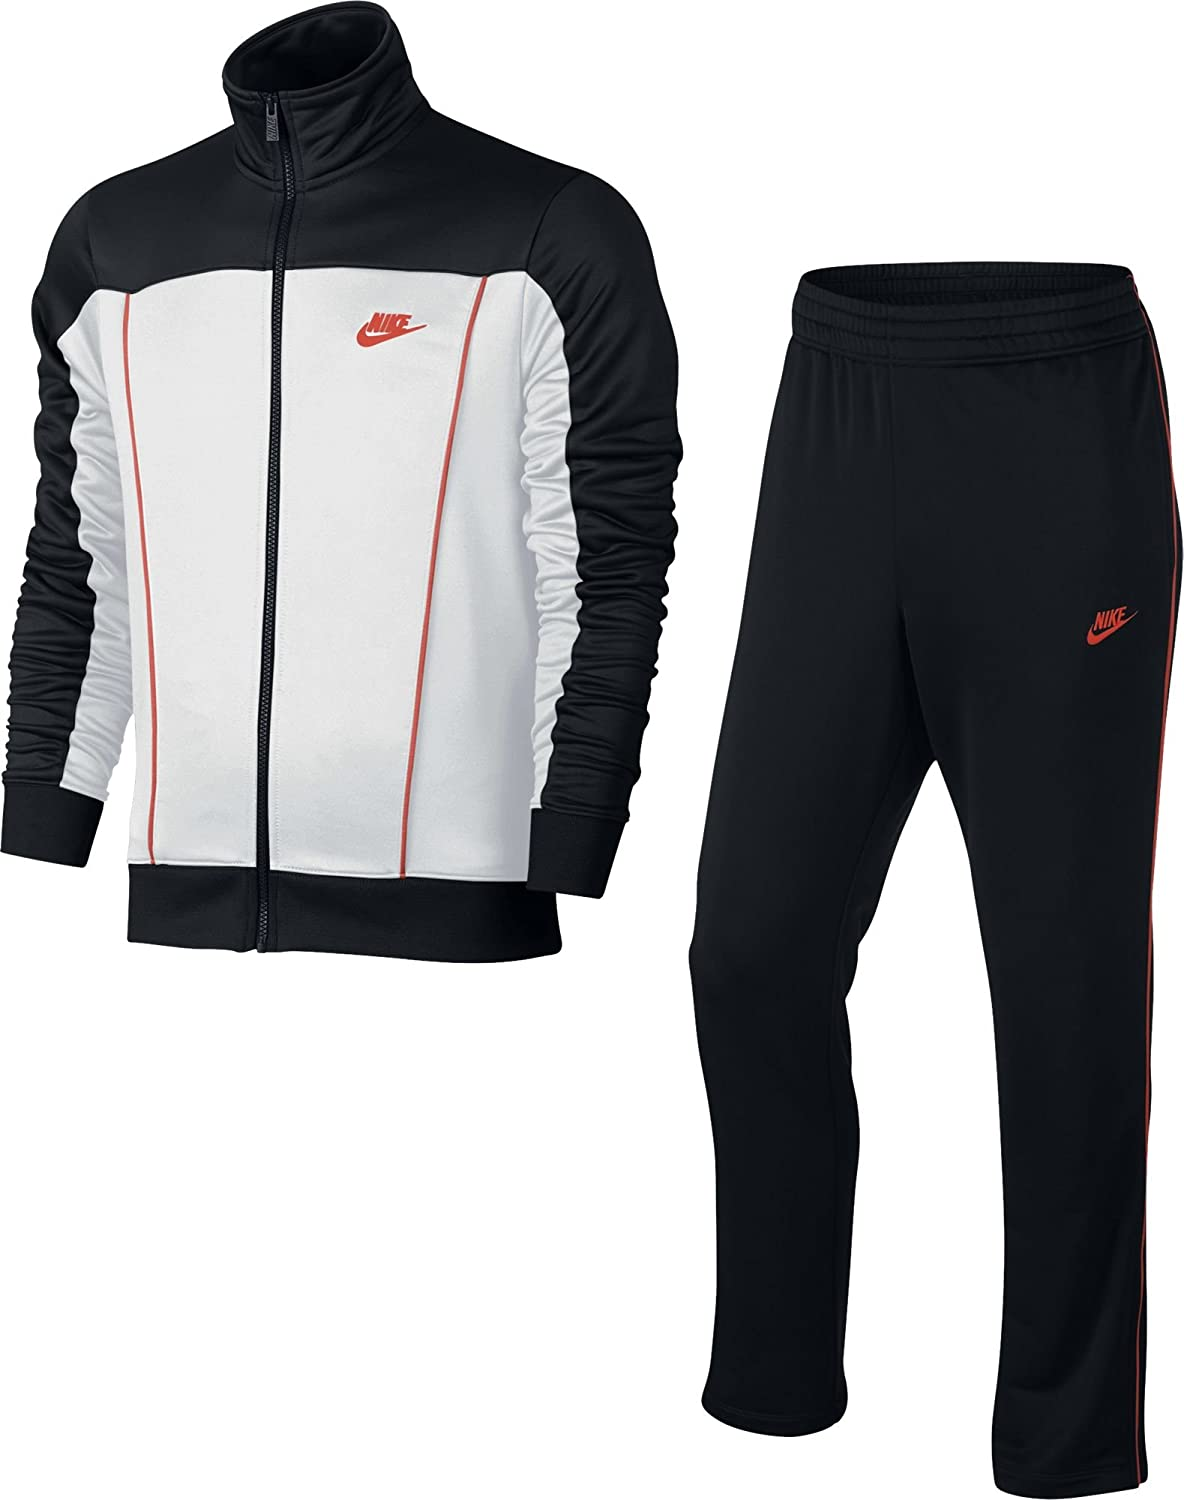 7e149a600c Nike M NSW TRK Suit PK Pacific Tracksuit for Man